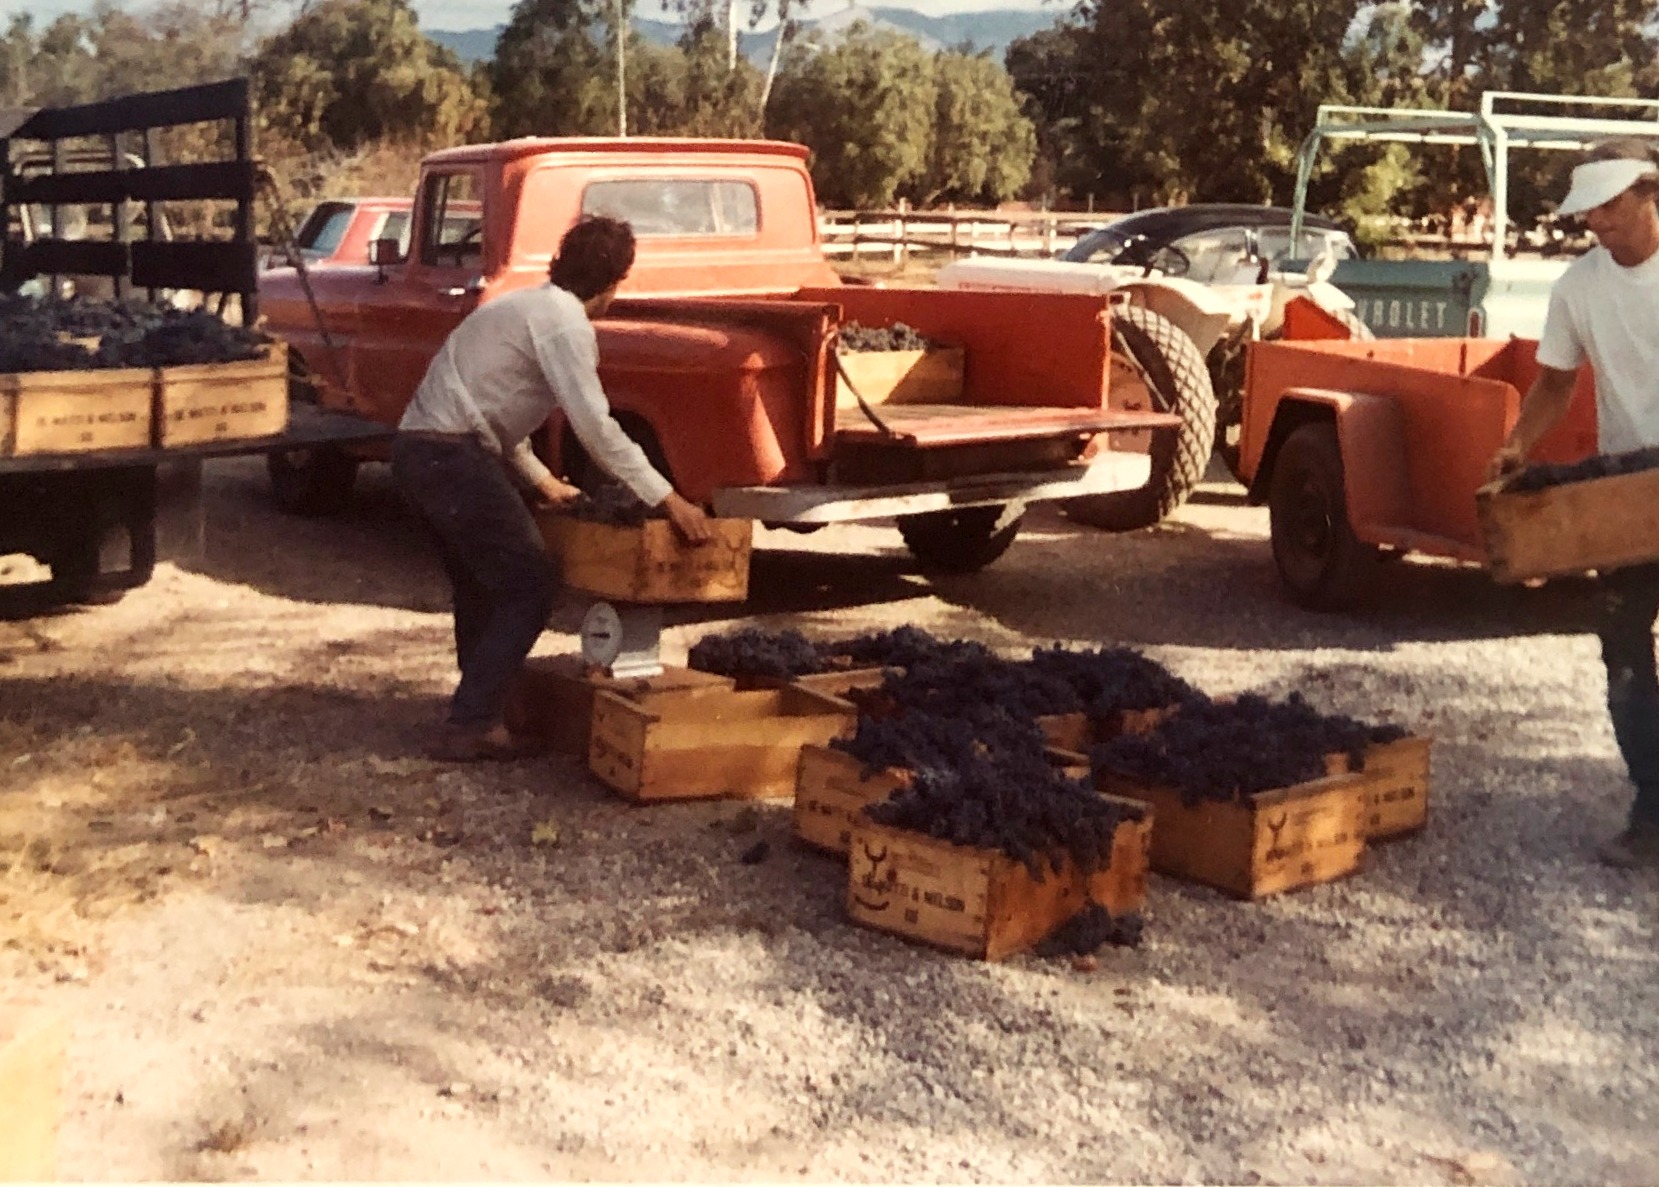 The first harvest in 1972 or 1973